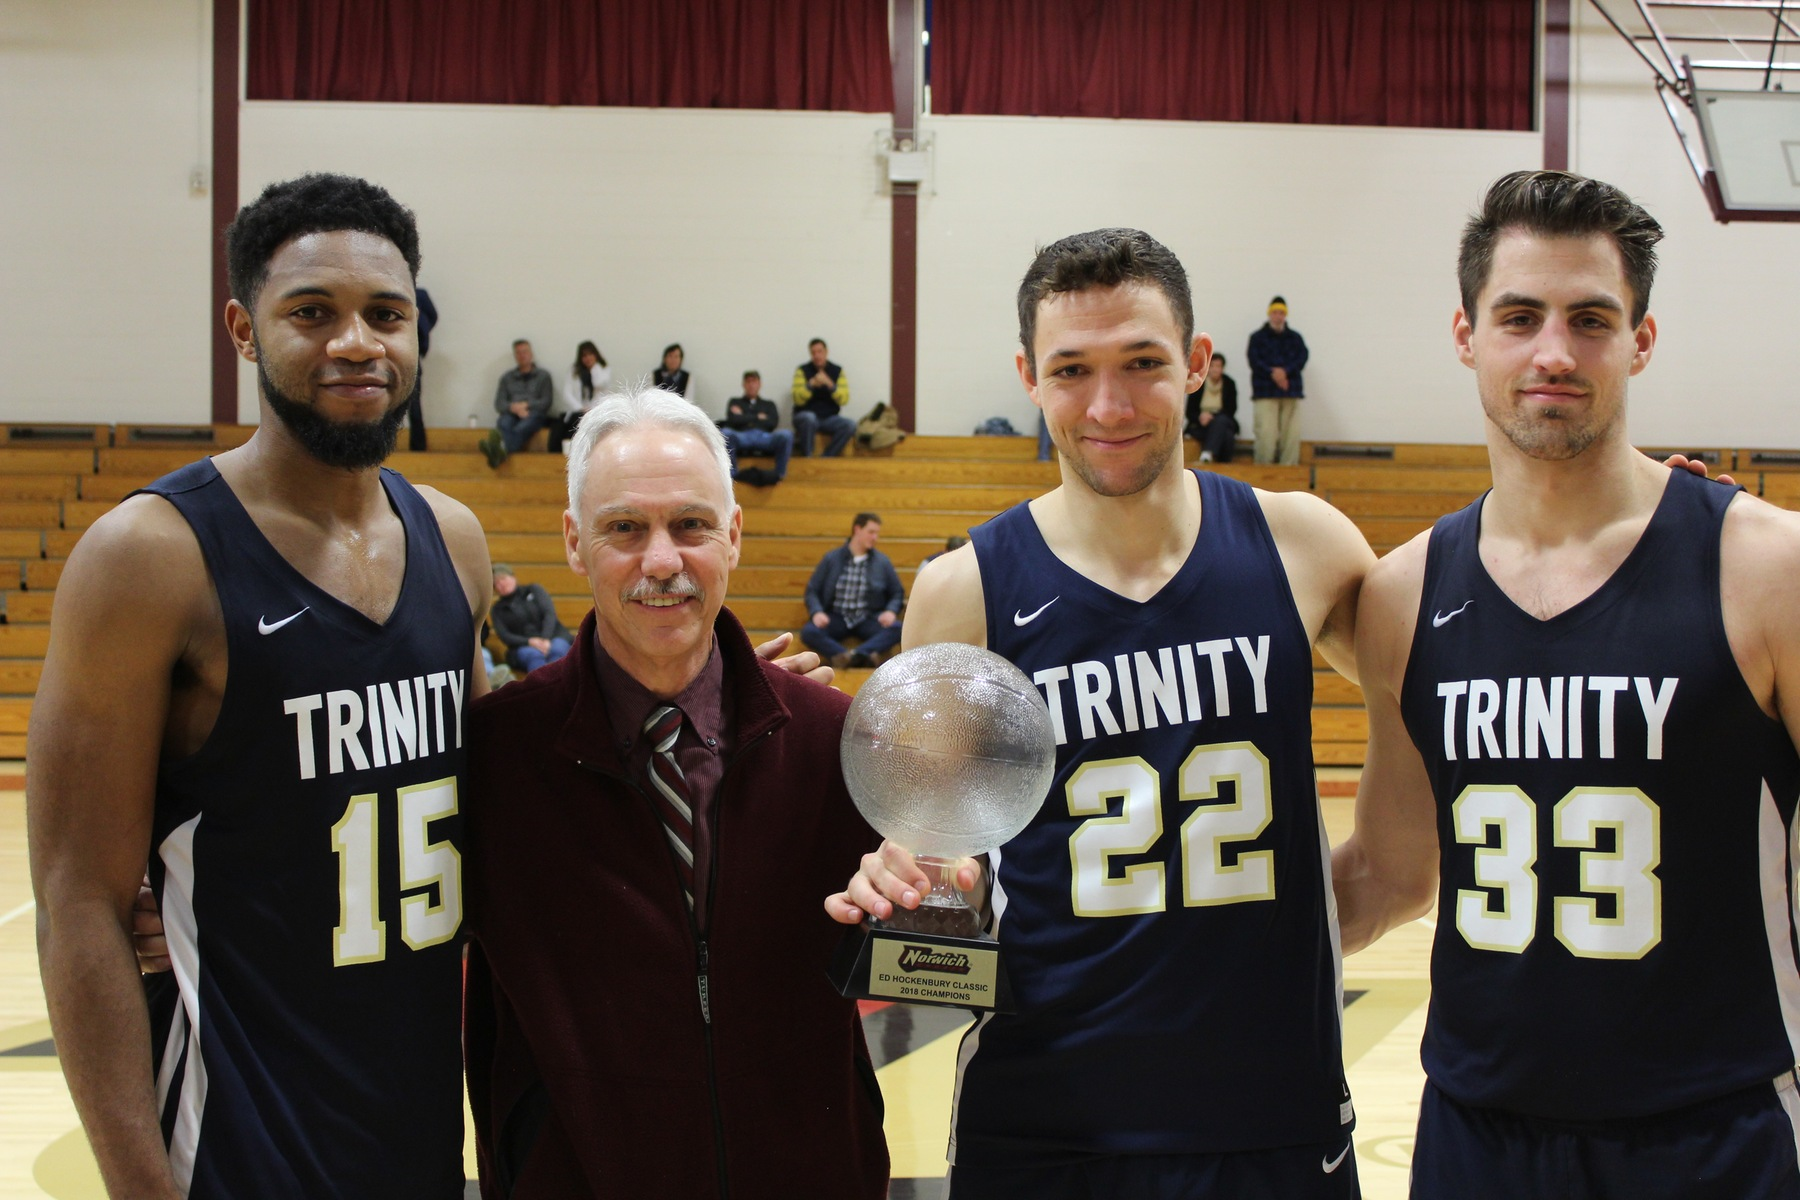 Men's Basketball: Bantams withstand Cadets comeback bid, win Hockenbury Championship 66-59